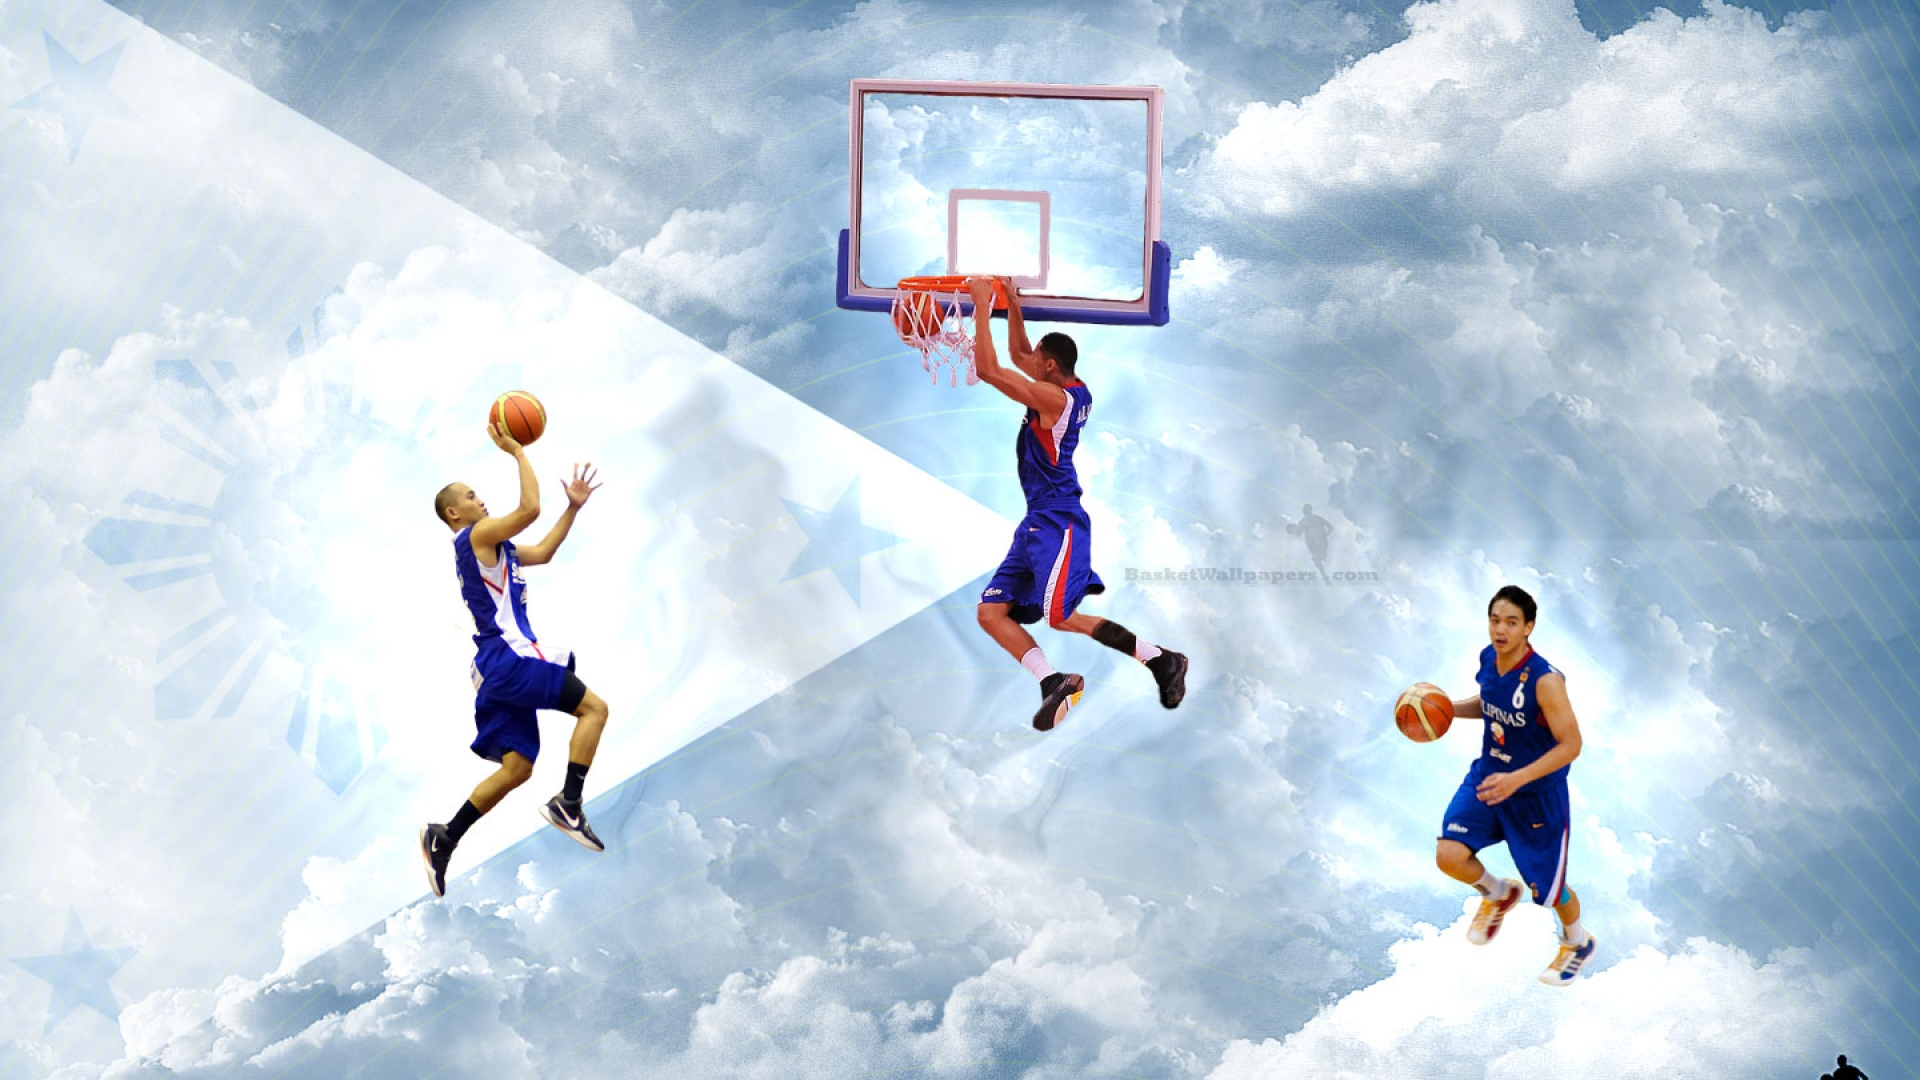 Casio Aguilar NBA wallpaper